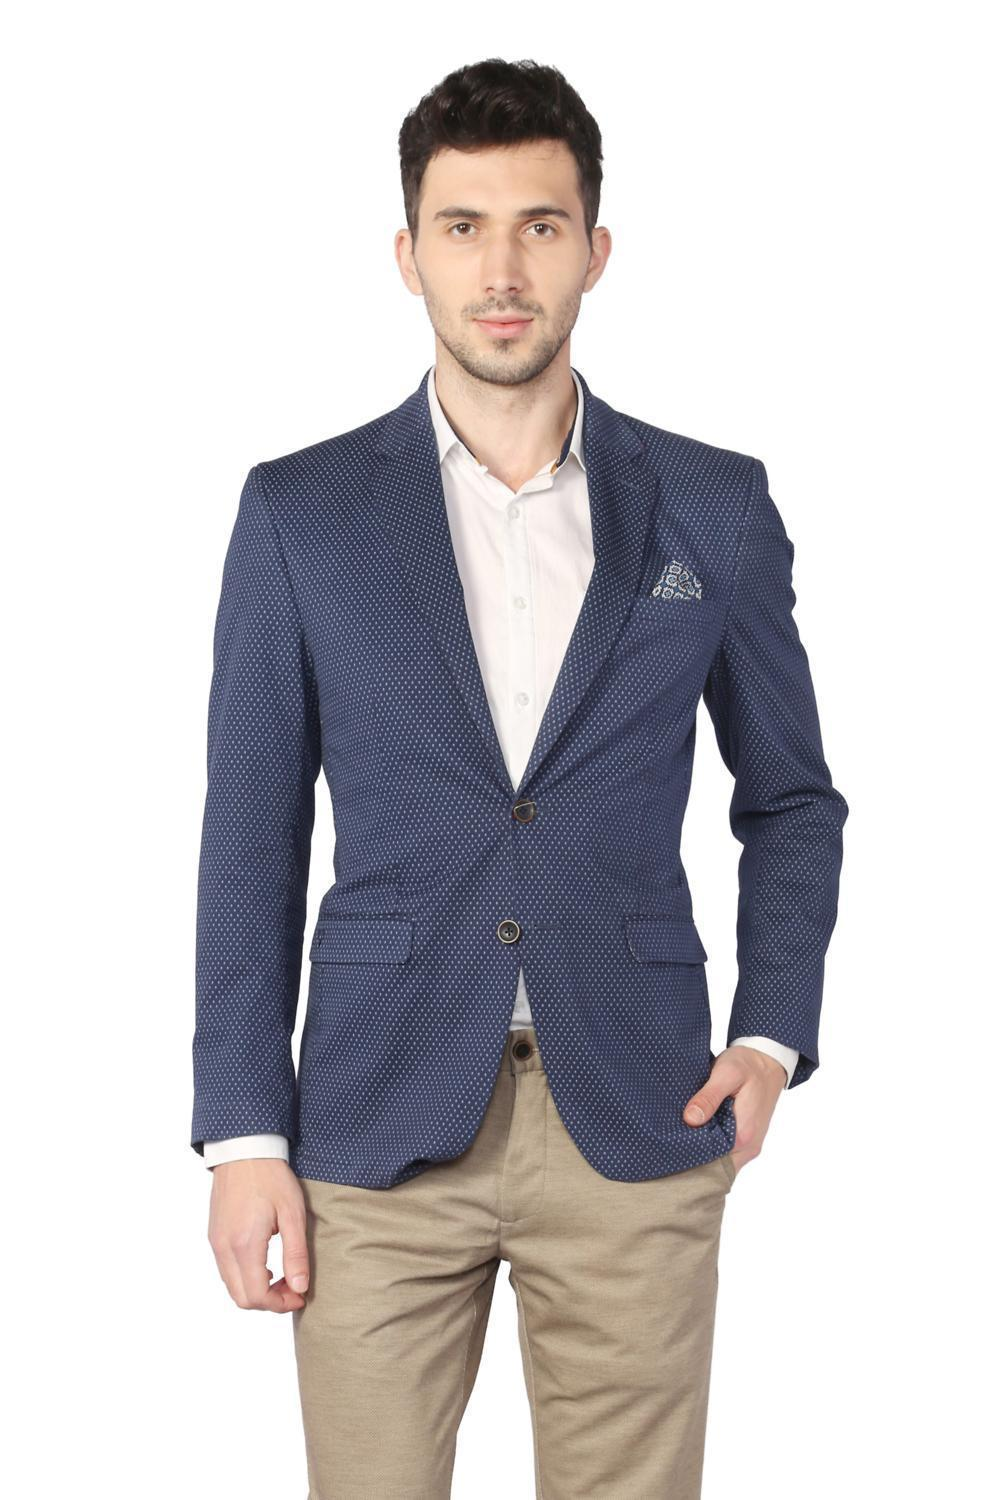 aaa6b9f57 Allen Solly Suits & Blazers, Allen Solly Blue Blazer for Men at  Allensolly.com